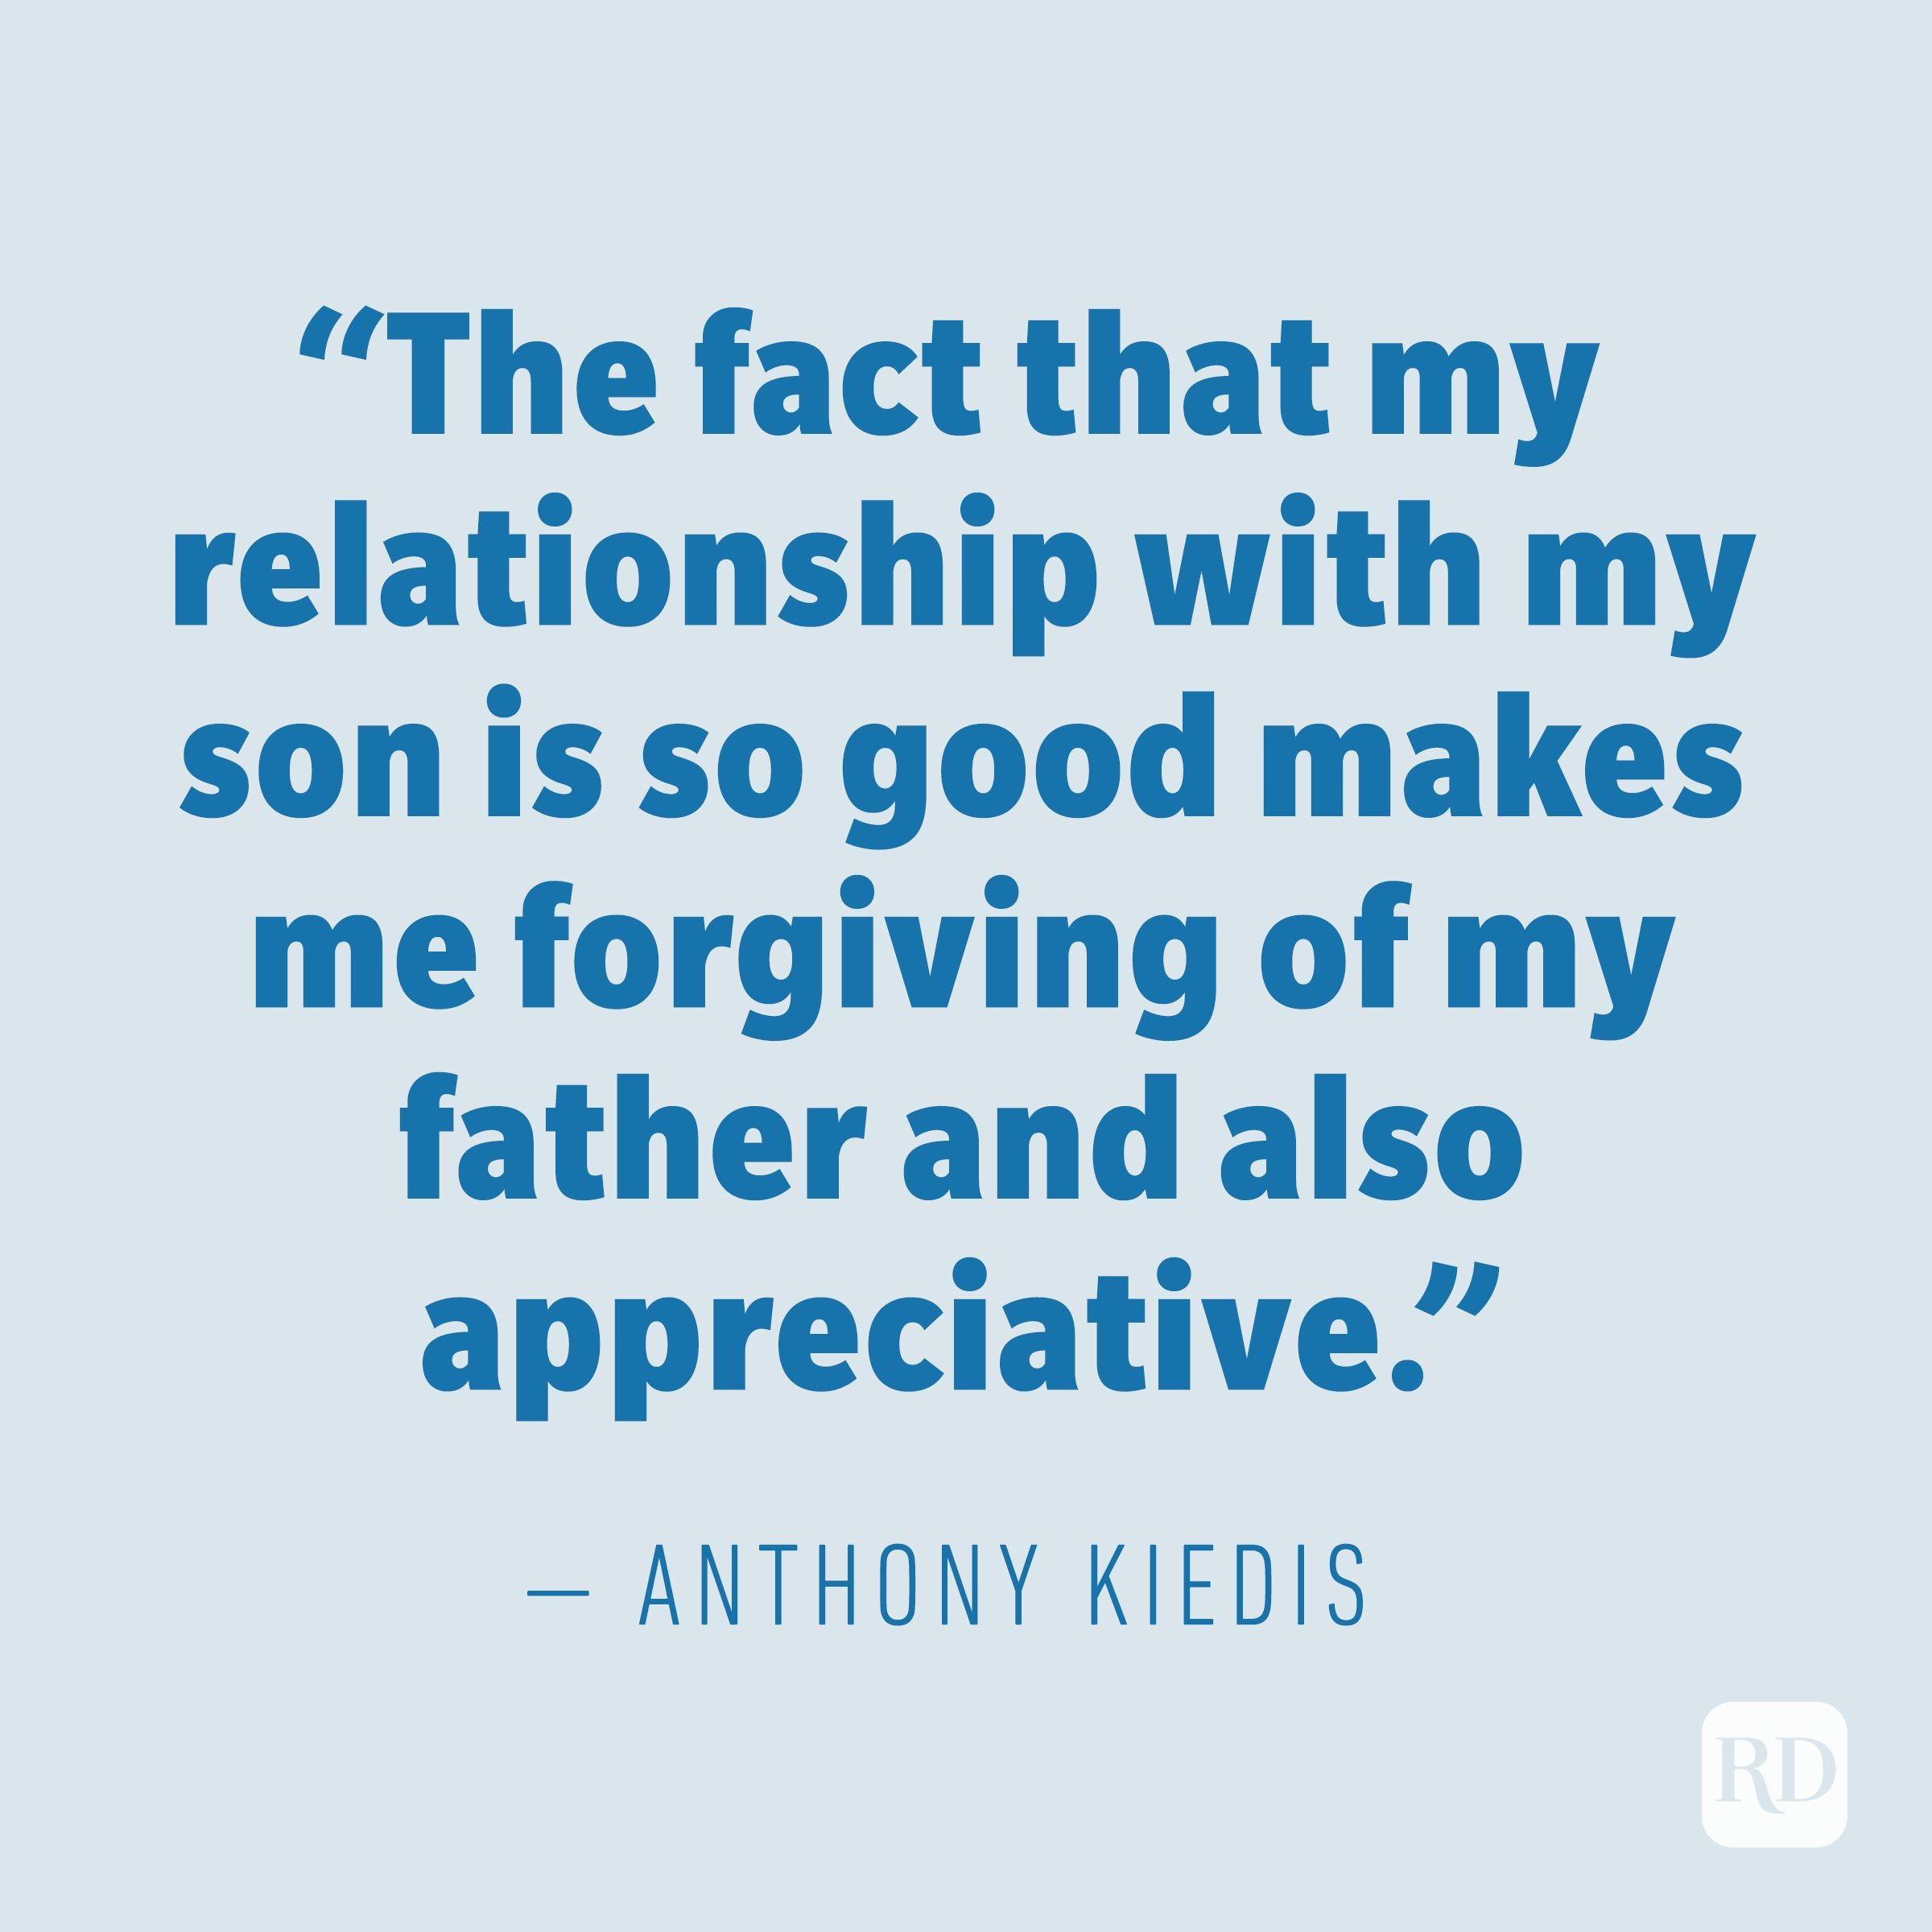 """The fact that my relationship with my son is so good makes me forgiving of my father and also appreciative."" —ANTHONY KIEDIS"